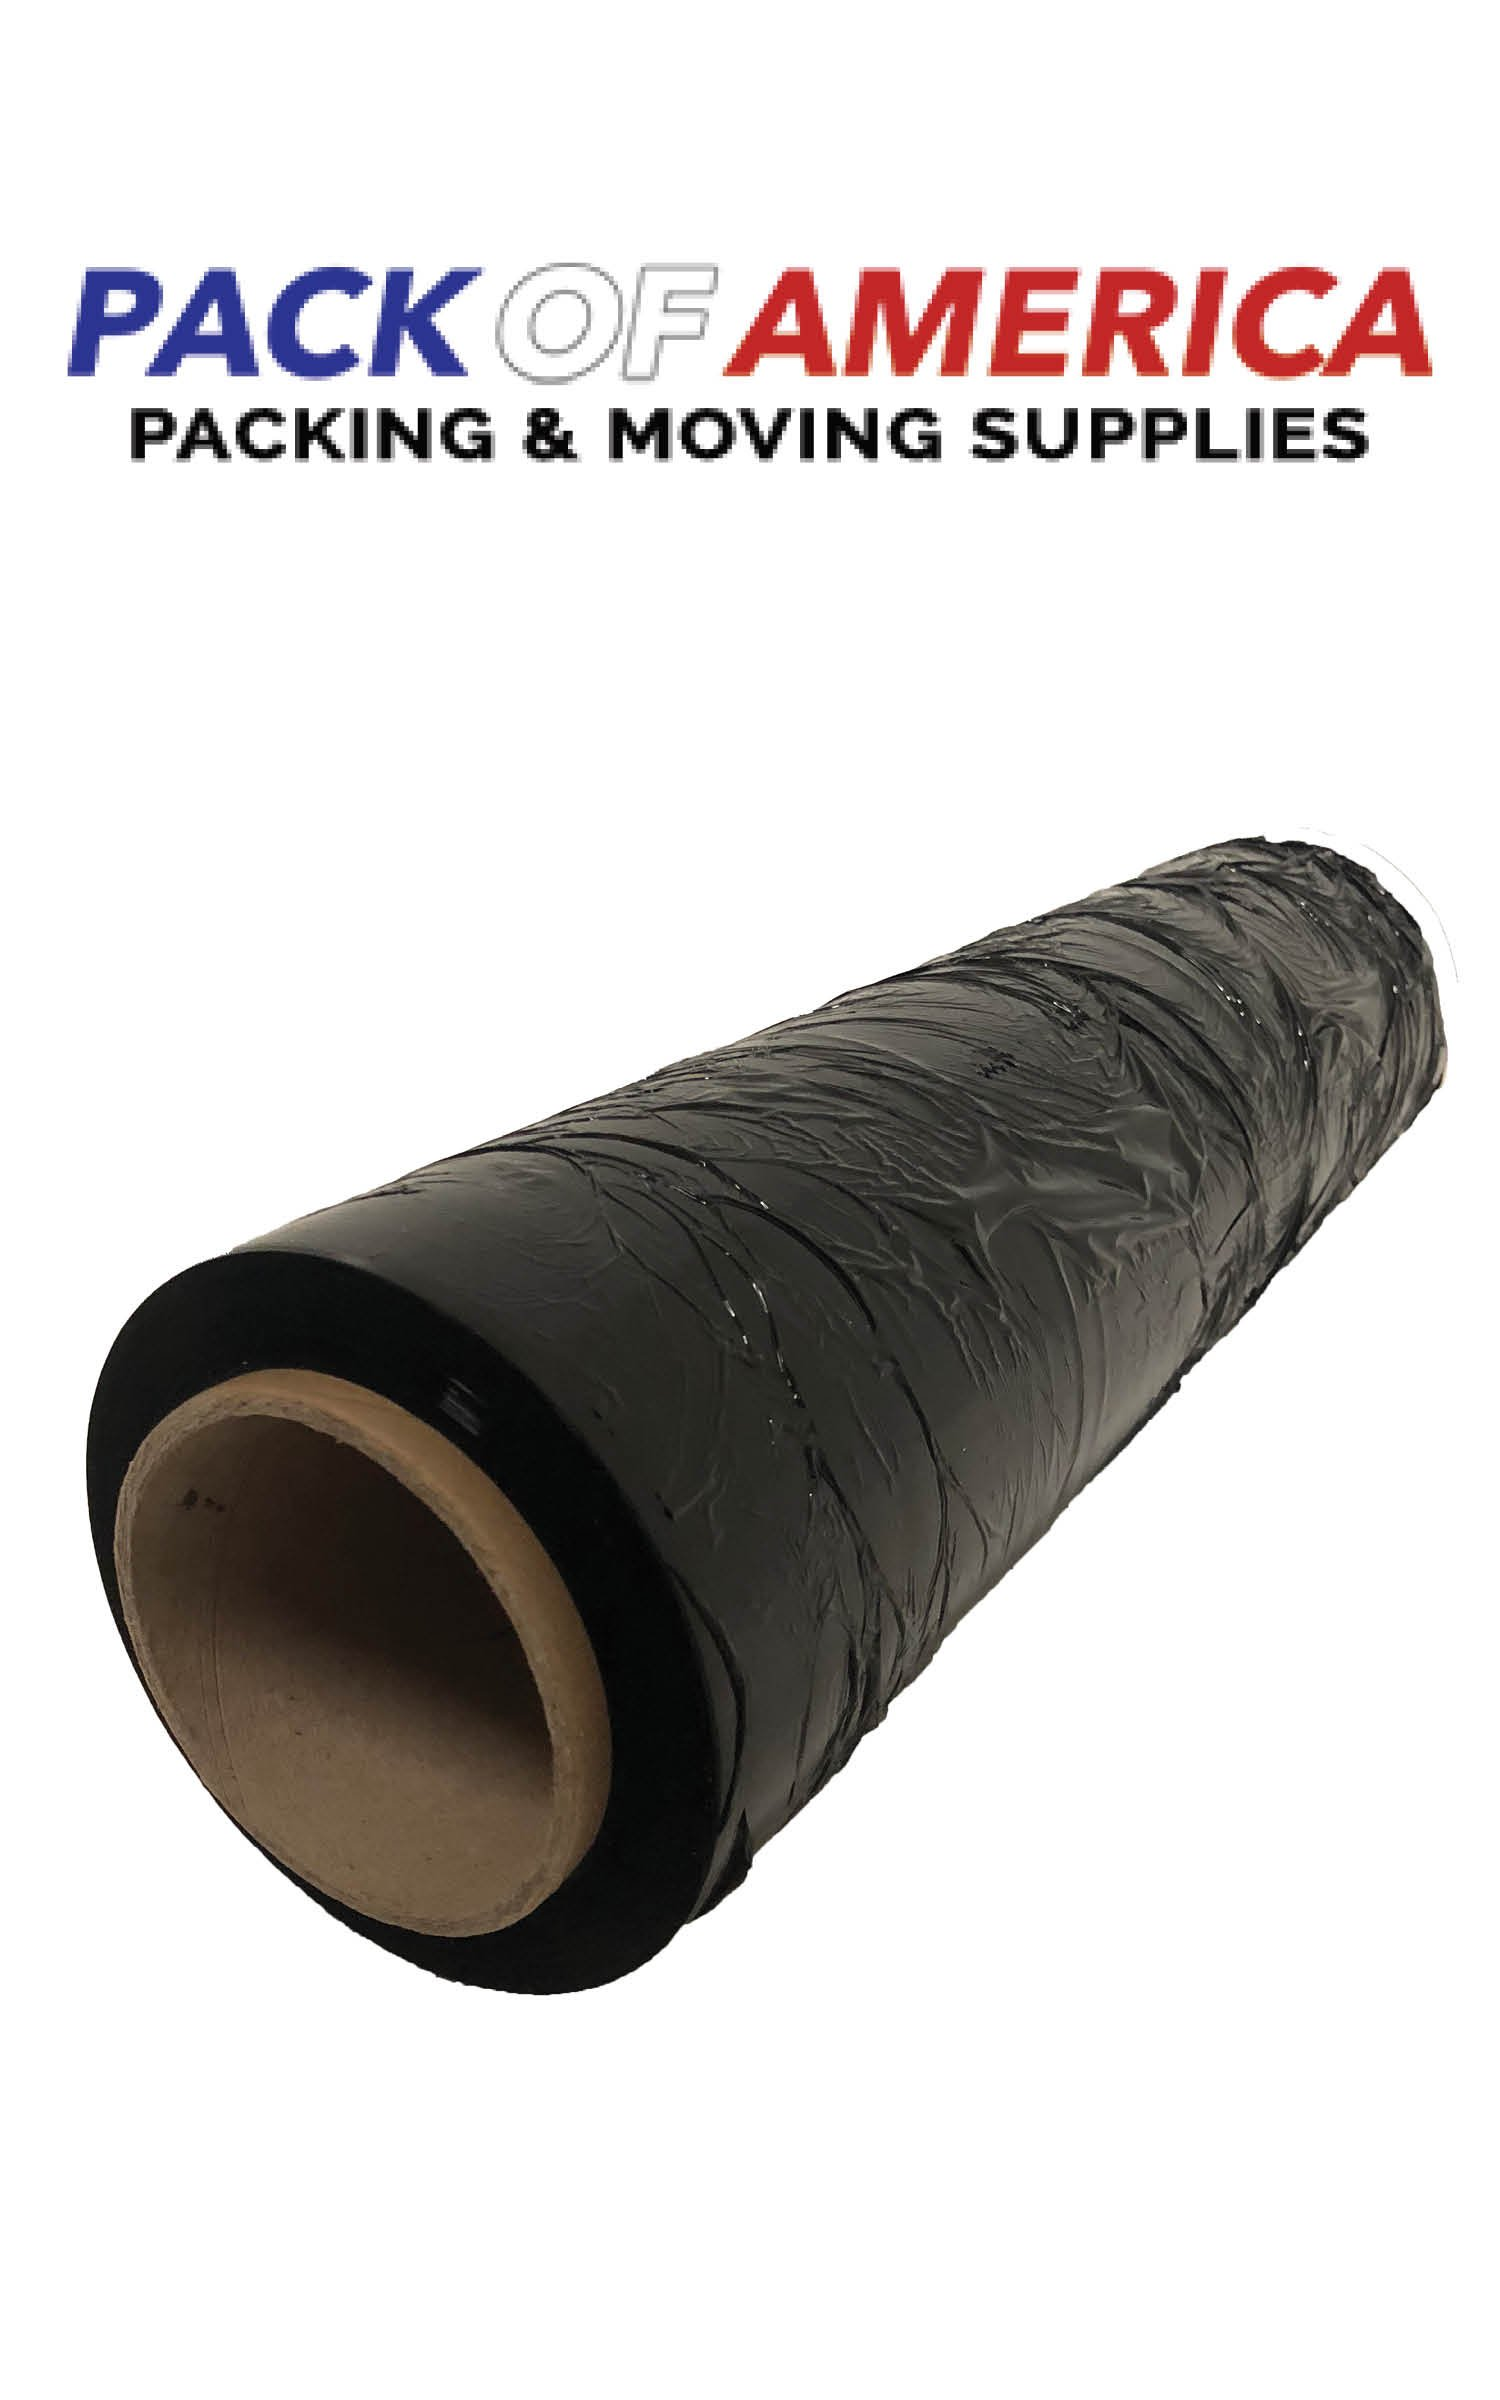 Pack of America Industrial Stretch Film 18'' x 1100 Ft 3'' Core, 80 Gauge, Hand/Shrink Wrap, Heavy Duty, Moving and Packing Supply, Ideal for Furniture, Boxes and Pallet Wrapping (1 Pack/Roll, Black)